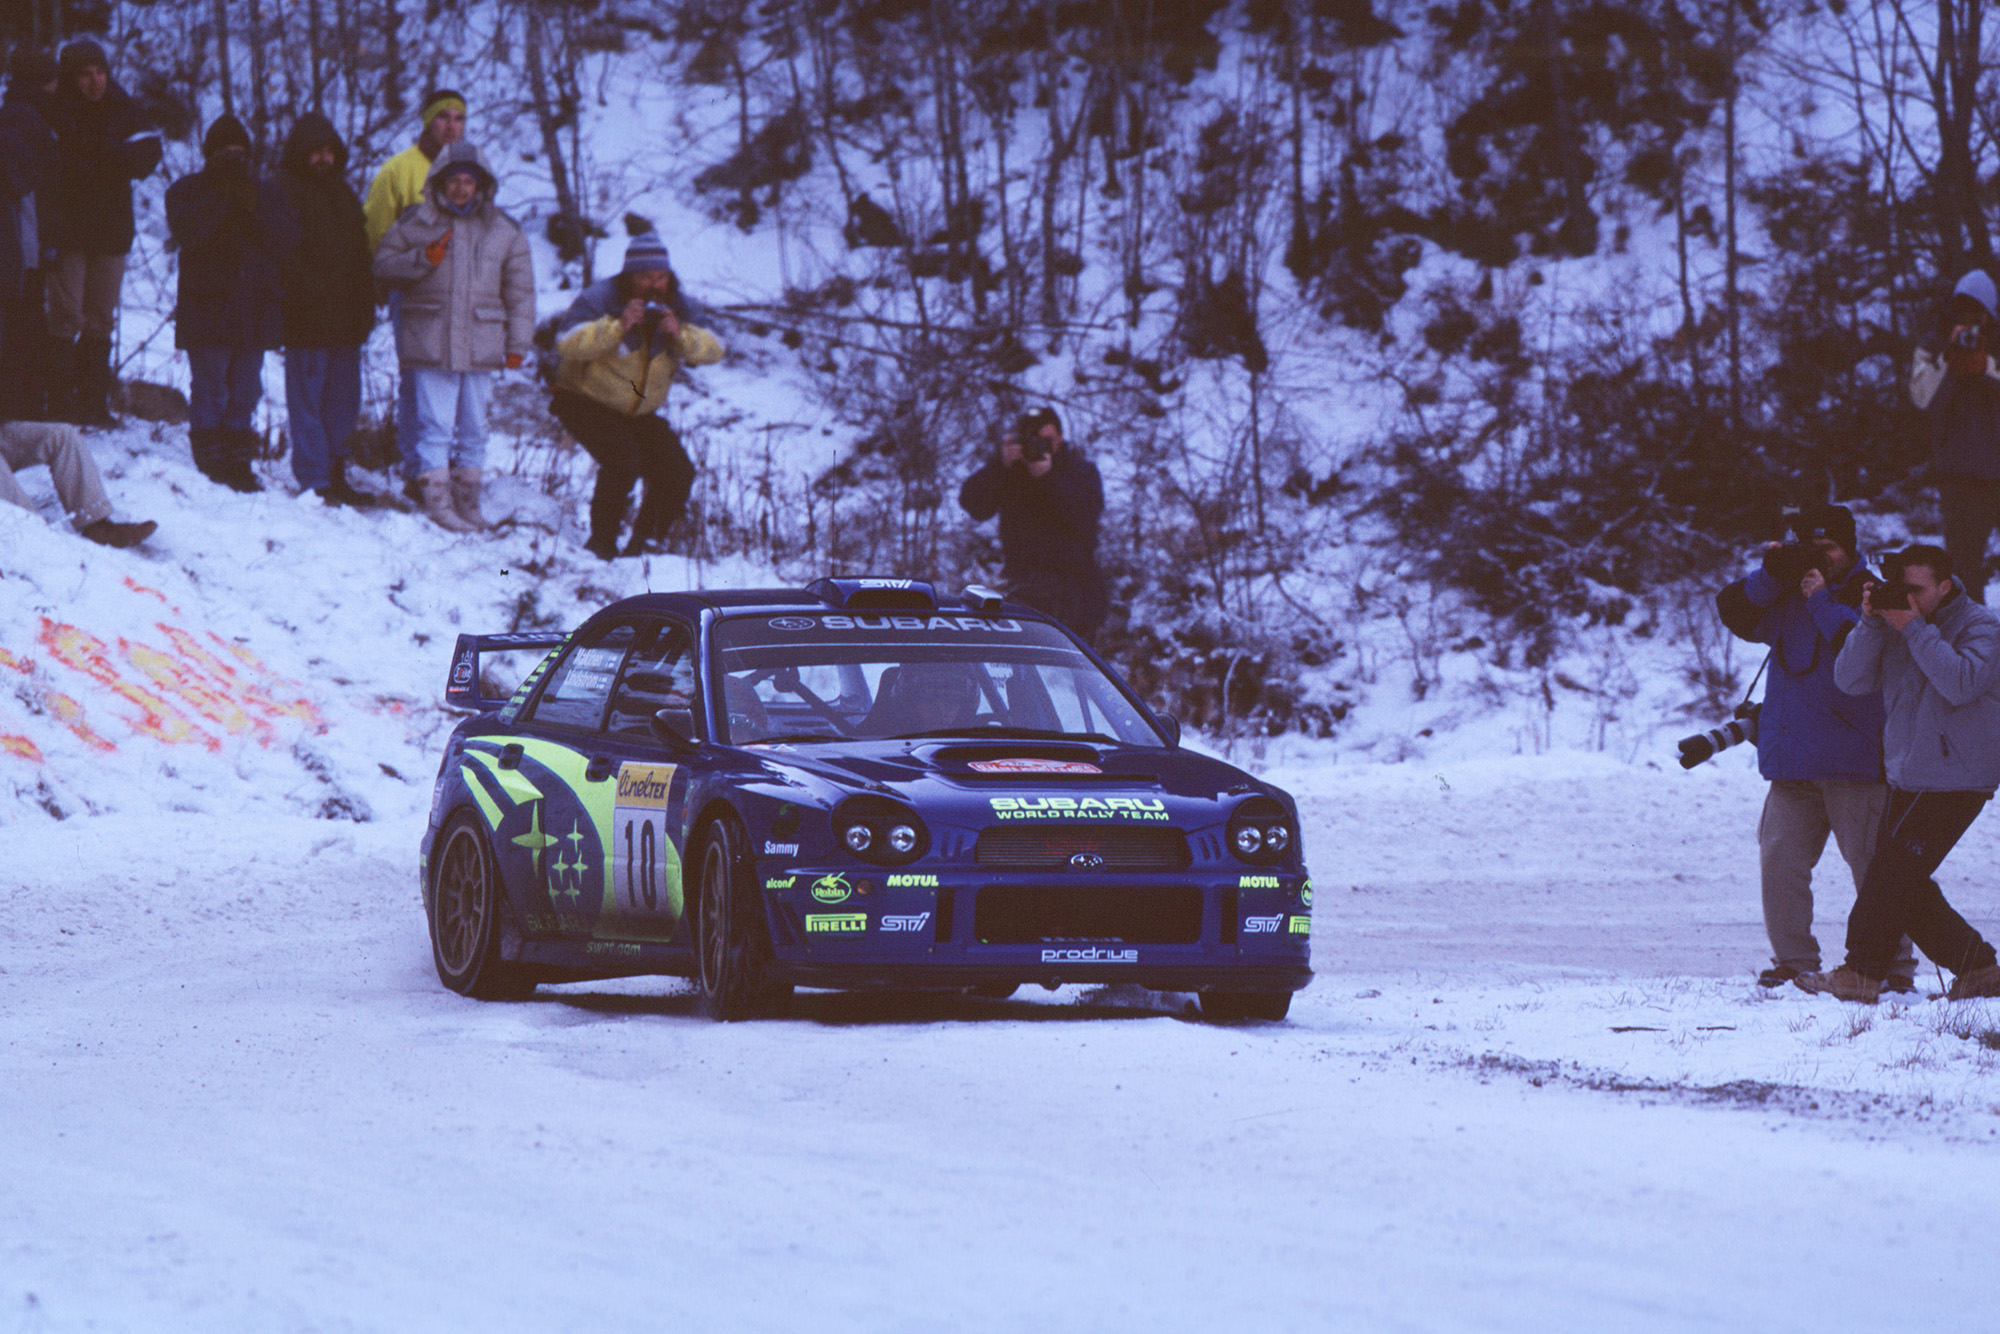 Subaru's Tommi Mäkinen slides past spectators during the 2002 Monte Carlo Rally